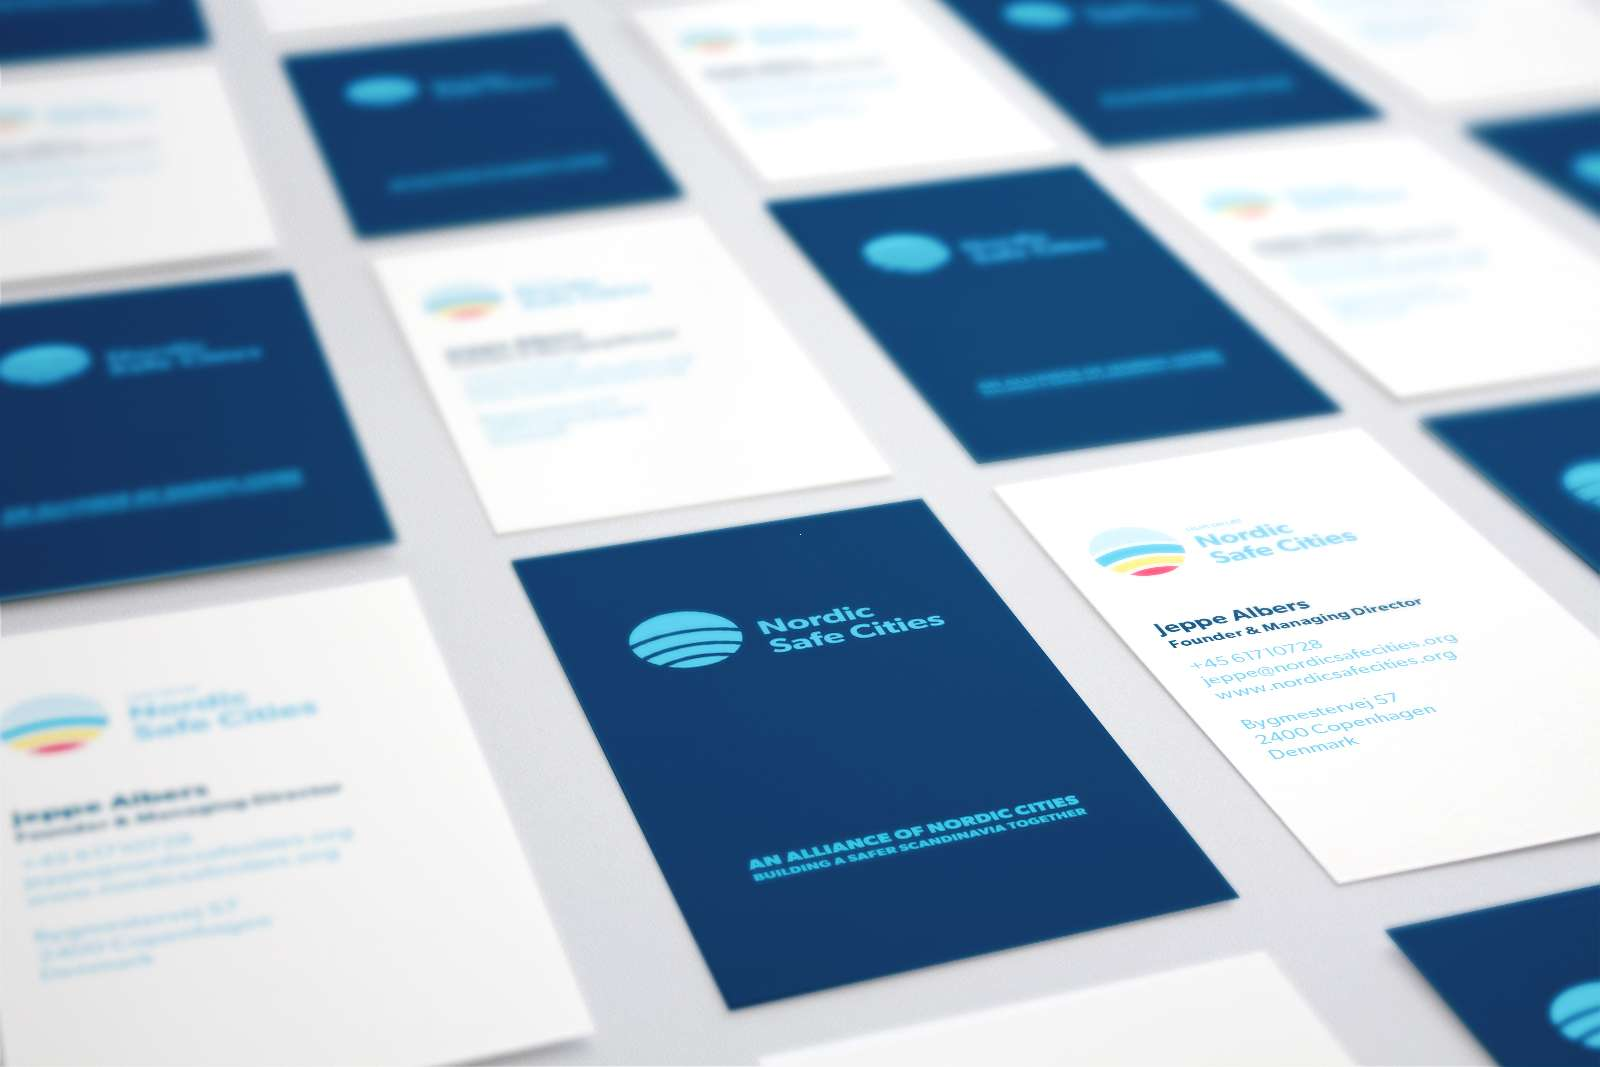 Nordic Safe Cities business cards